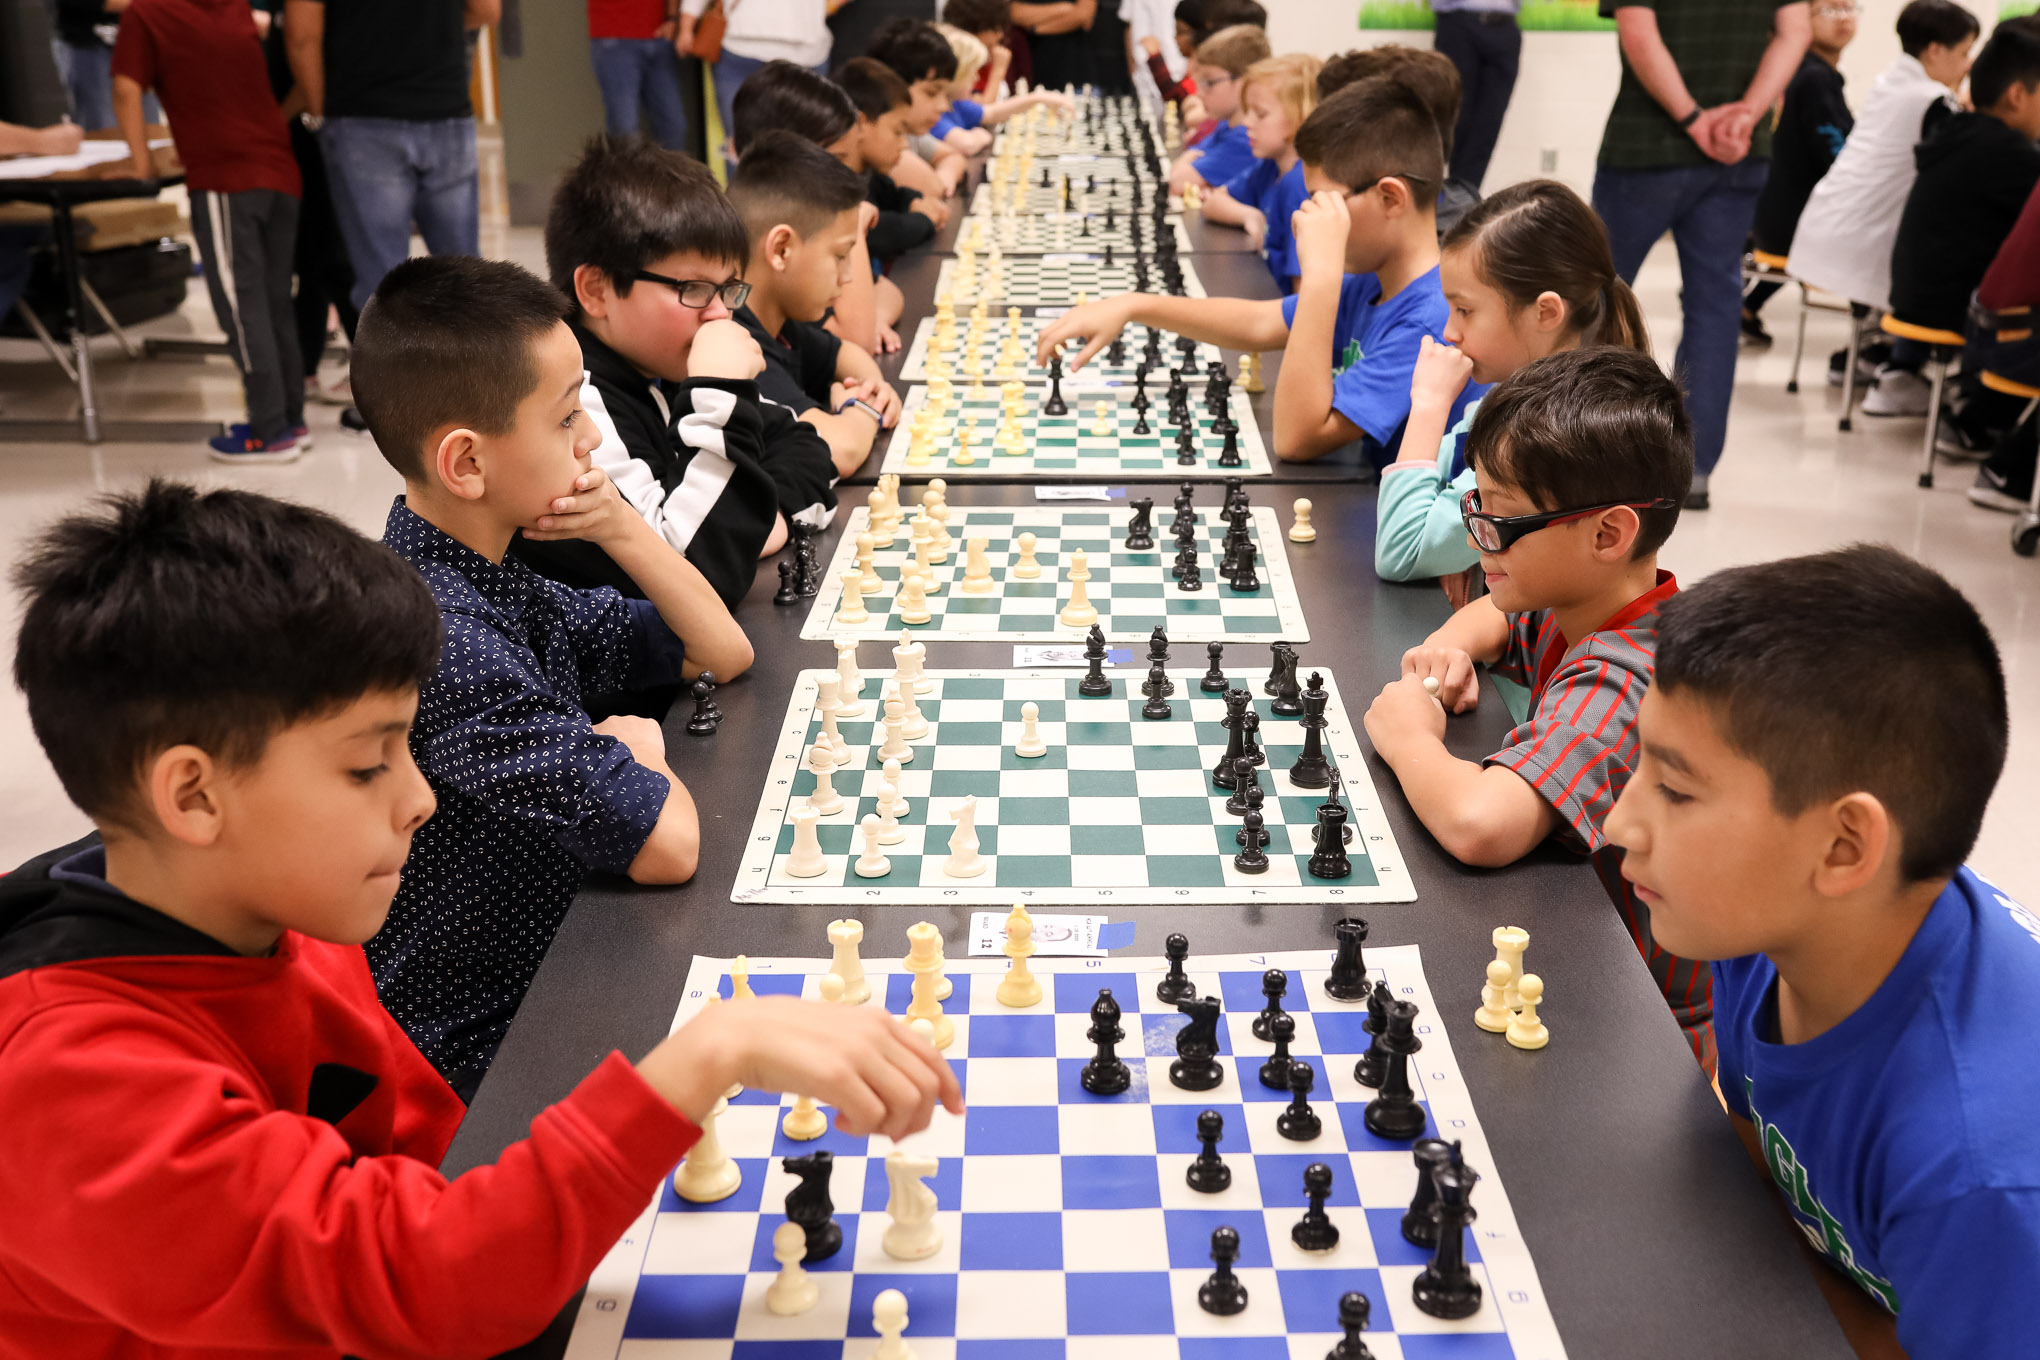 Strategy Reigns Supreme as Young Chess Players Test Their Tournament Skills